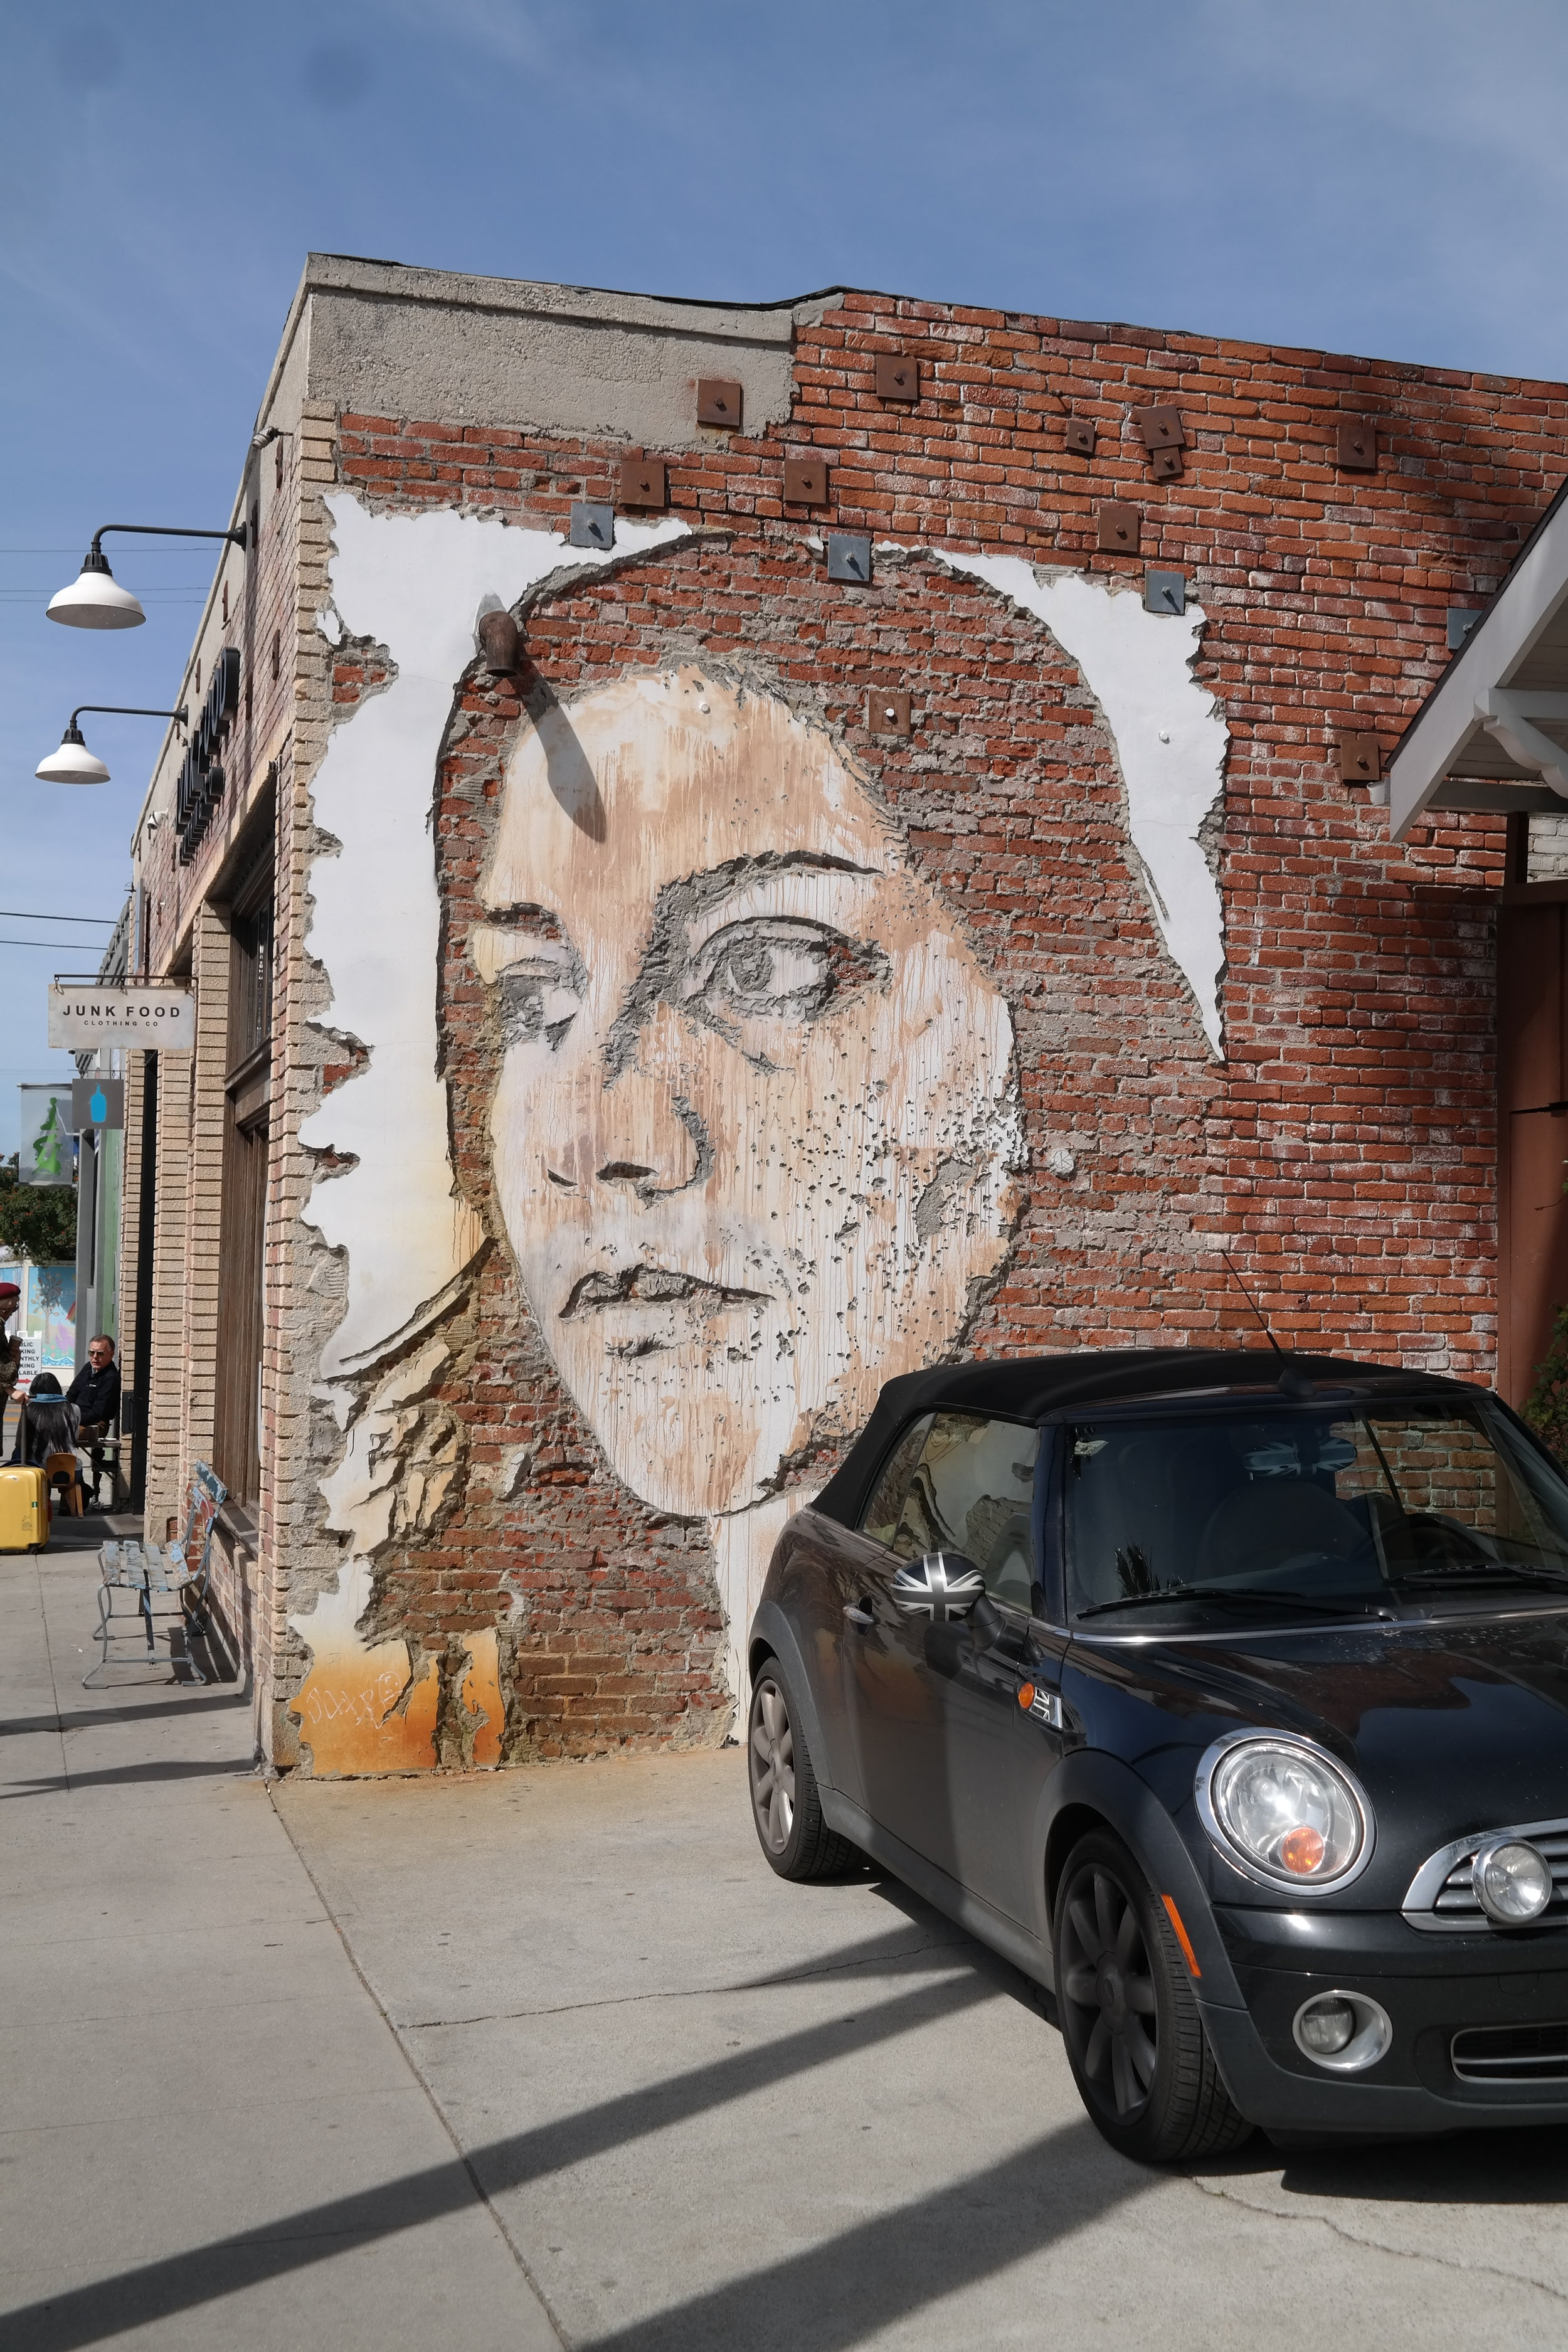 Beautiful portrait of a woman that was carved into the wall.